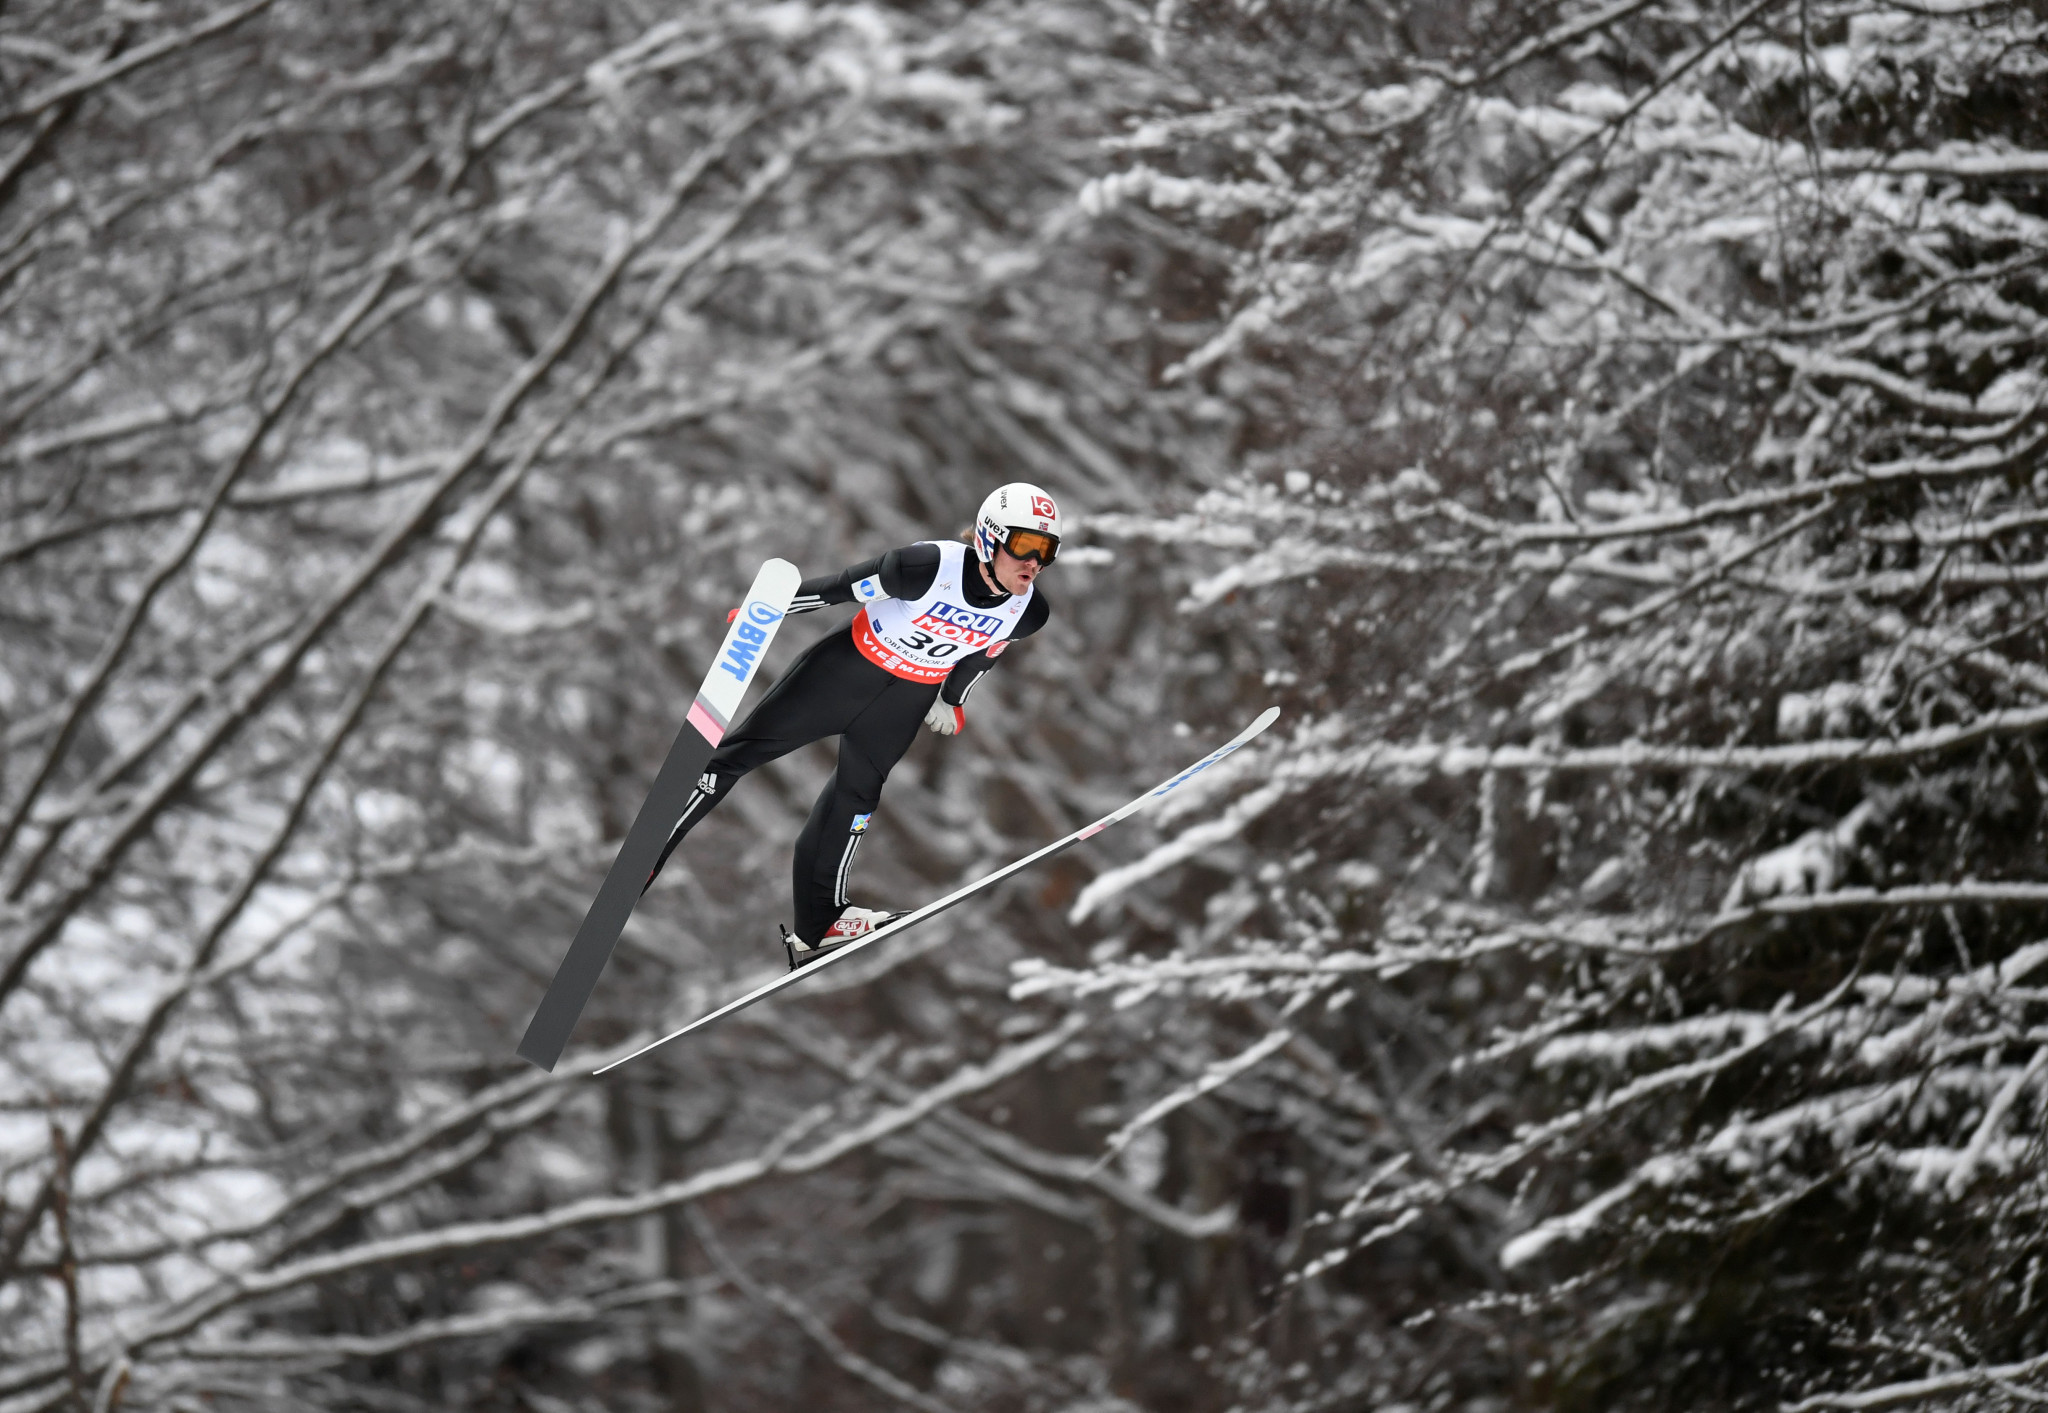 Tande takes FIS Ski Flying World Championship tile in Oberstdorf as Japan win FIS Ski Jumping World Cup team title